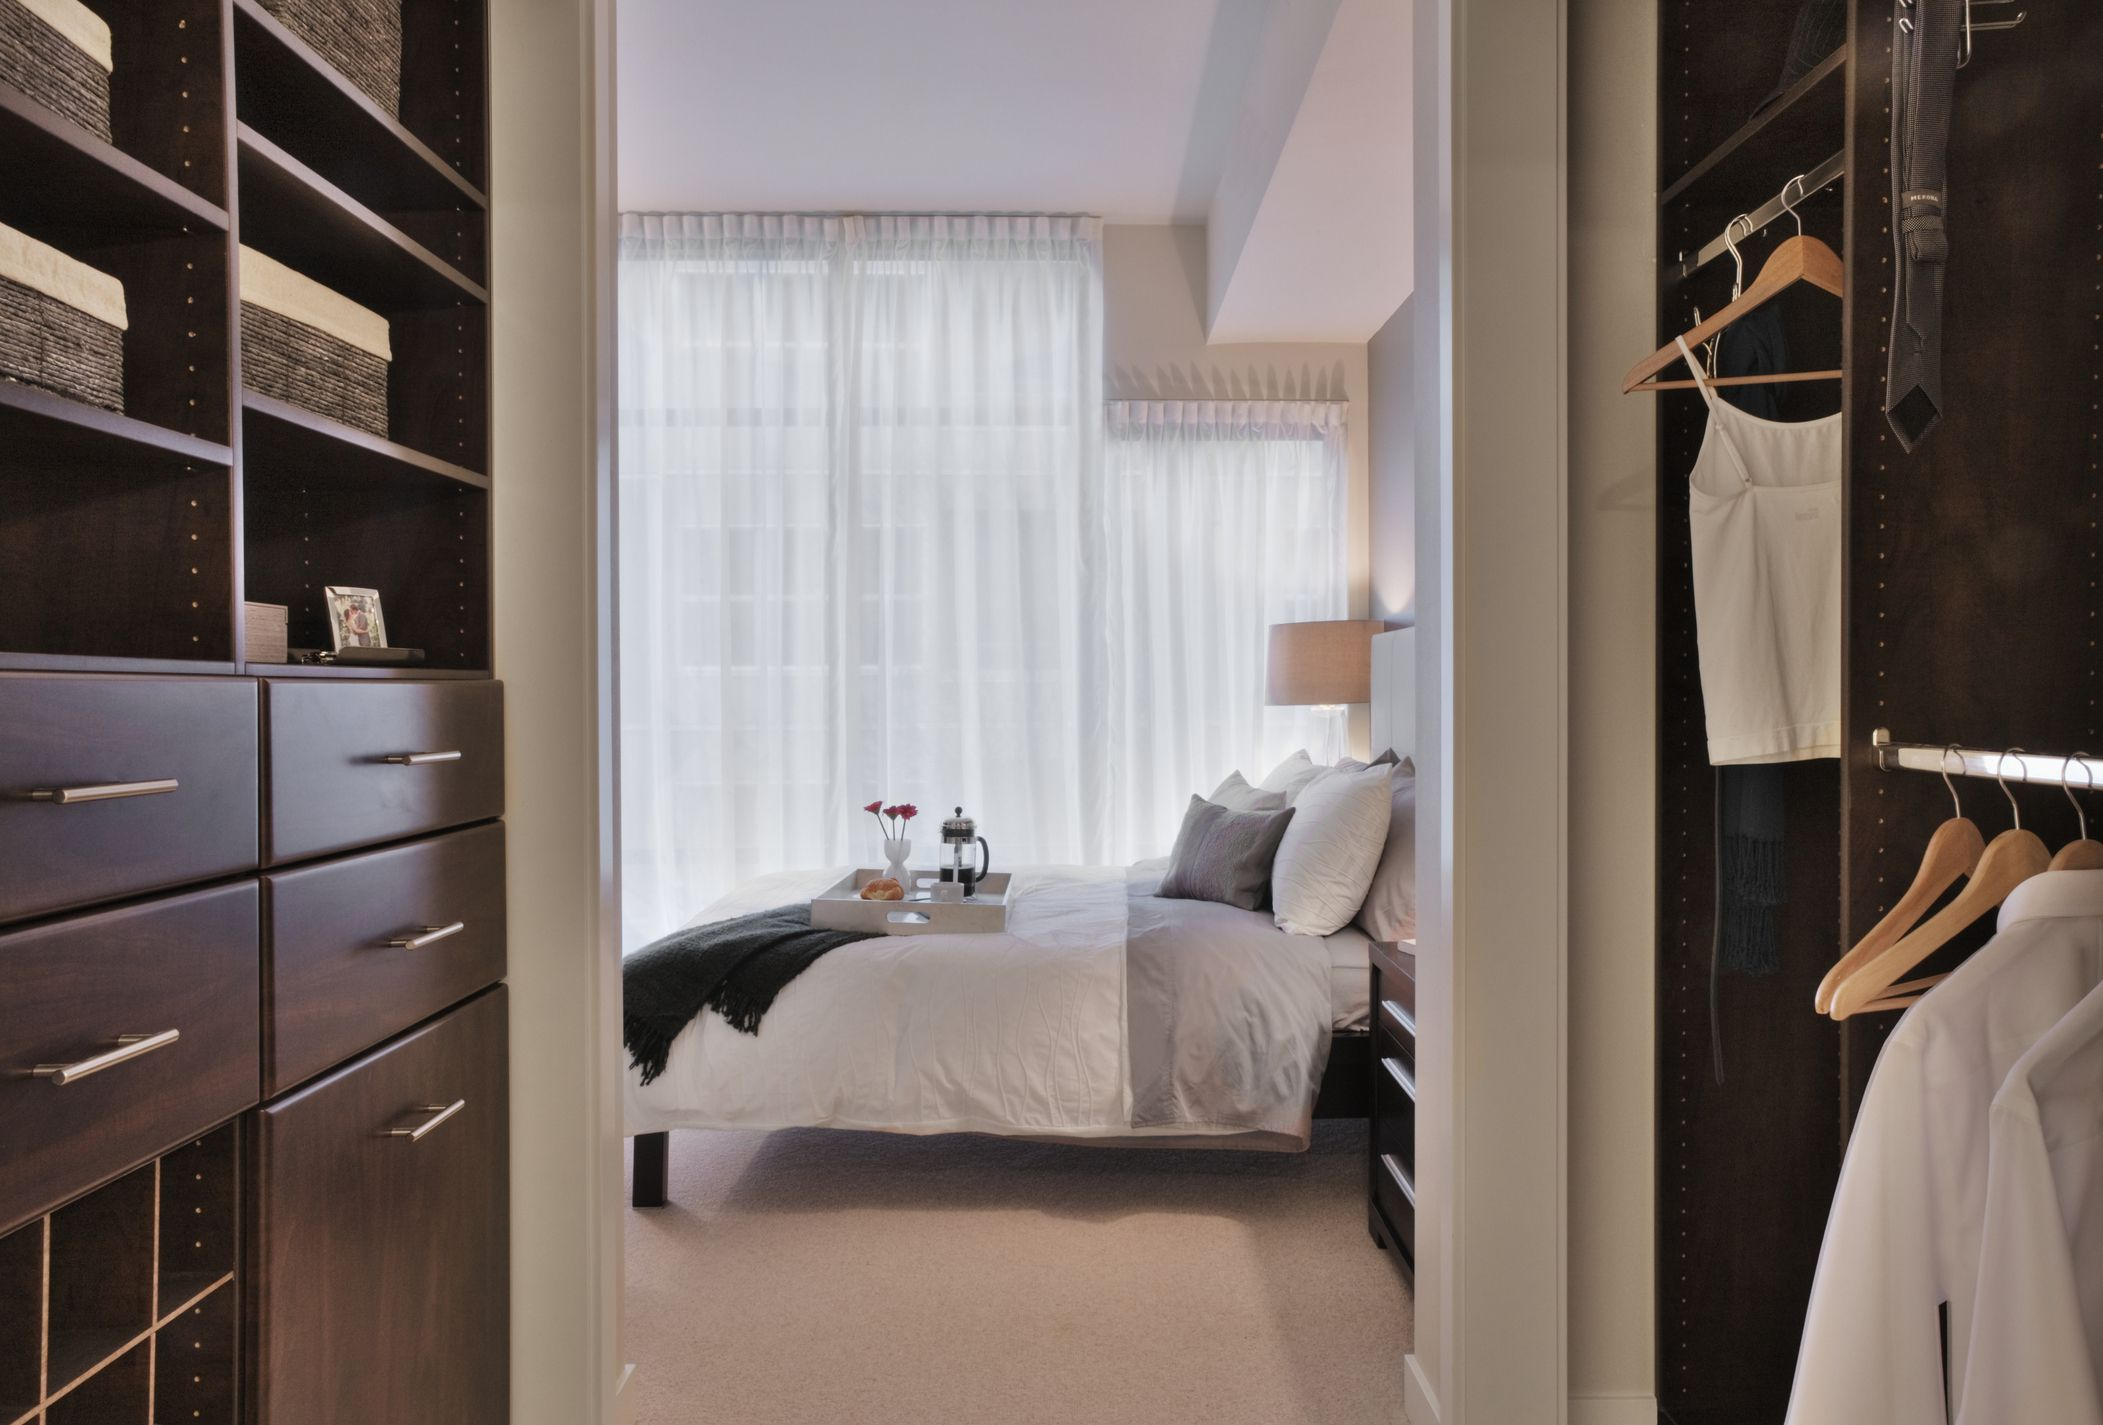 Clothes Closet Lighting Do's And Don'ts on Decorative Wall Sconces Non Electric Lights For Closets id=18395